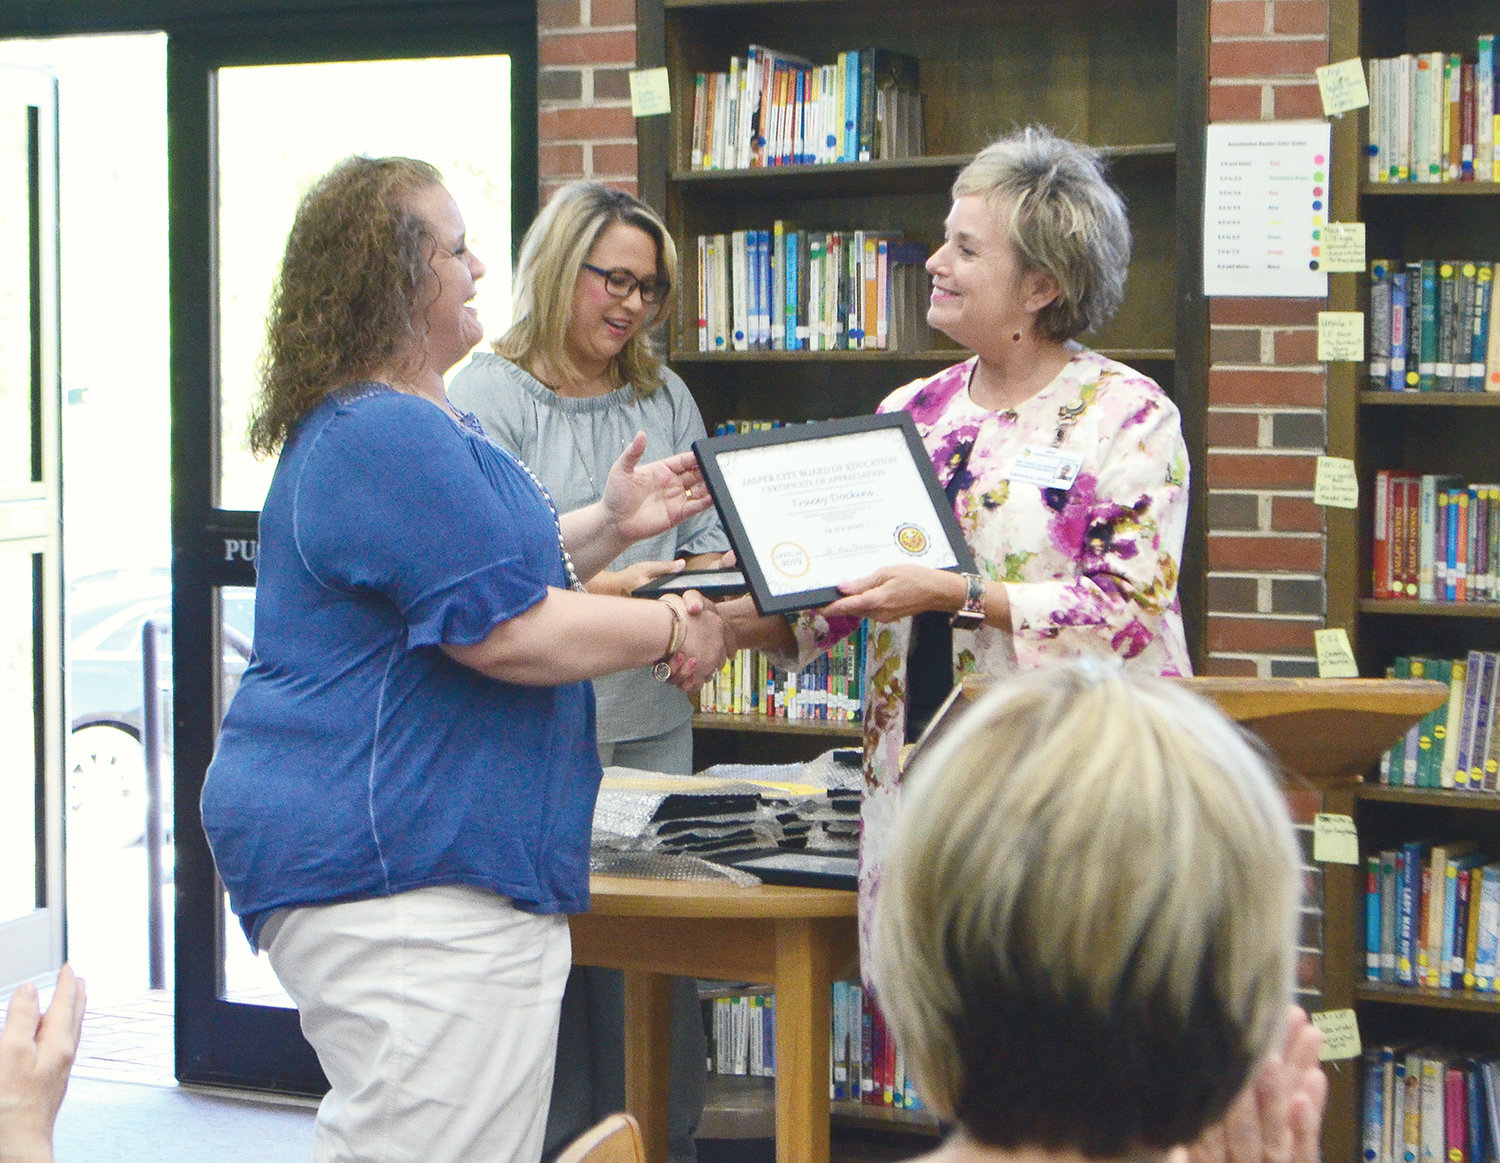 Tracey Dockins of T.R. Simmons Elementary School was honored for 14 and a half years of service in the CNP program.